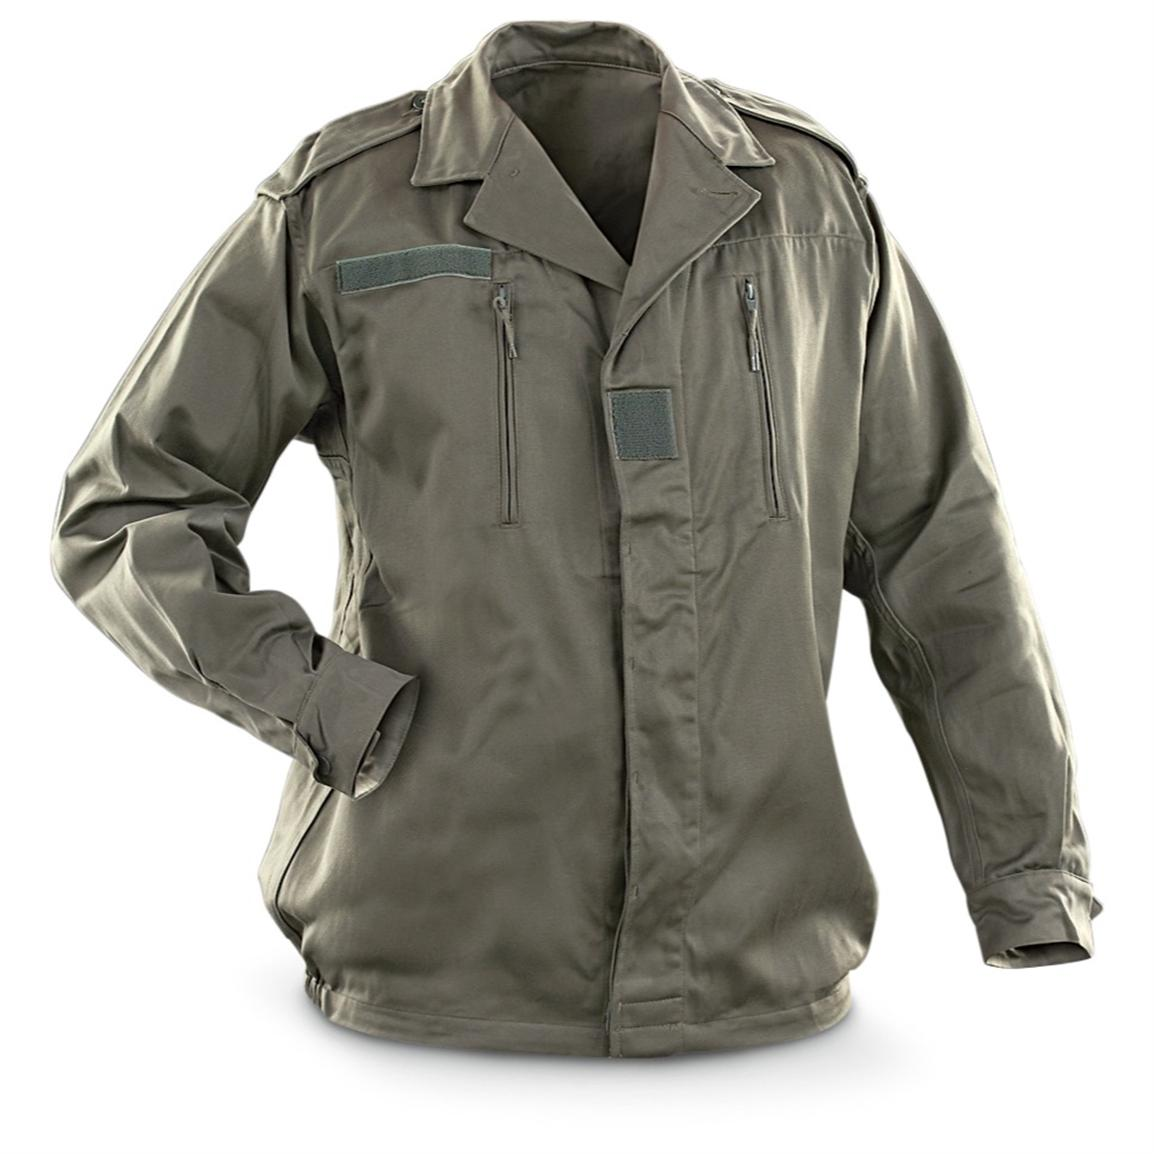 New French Military F2 Jacket, Olive Drab